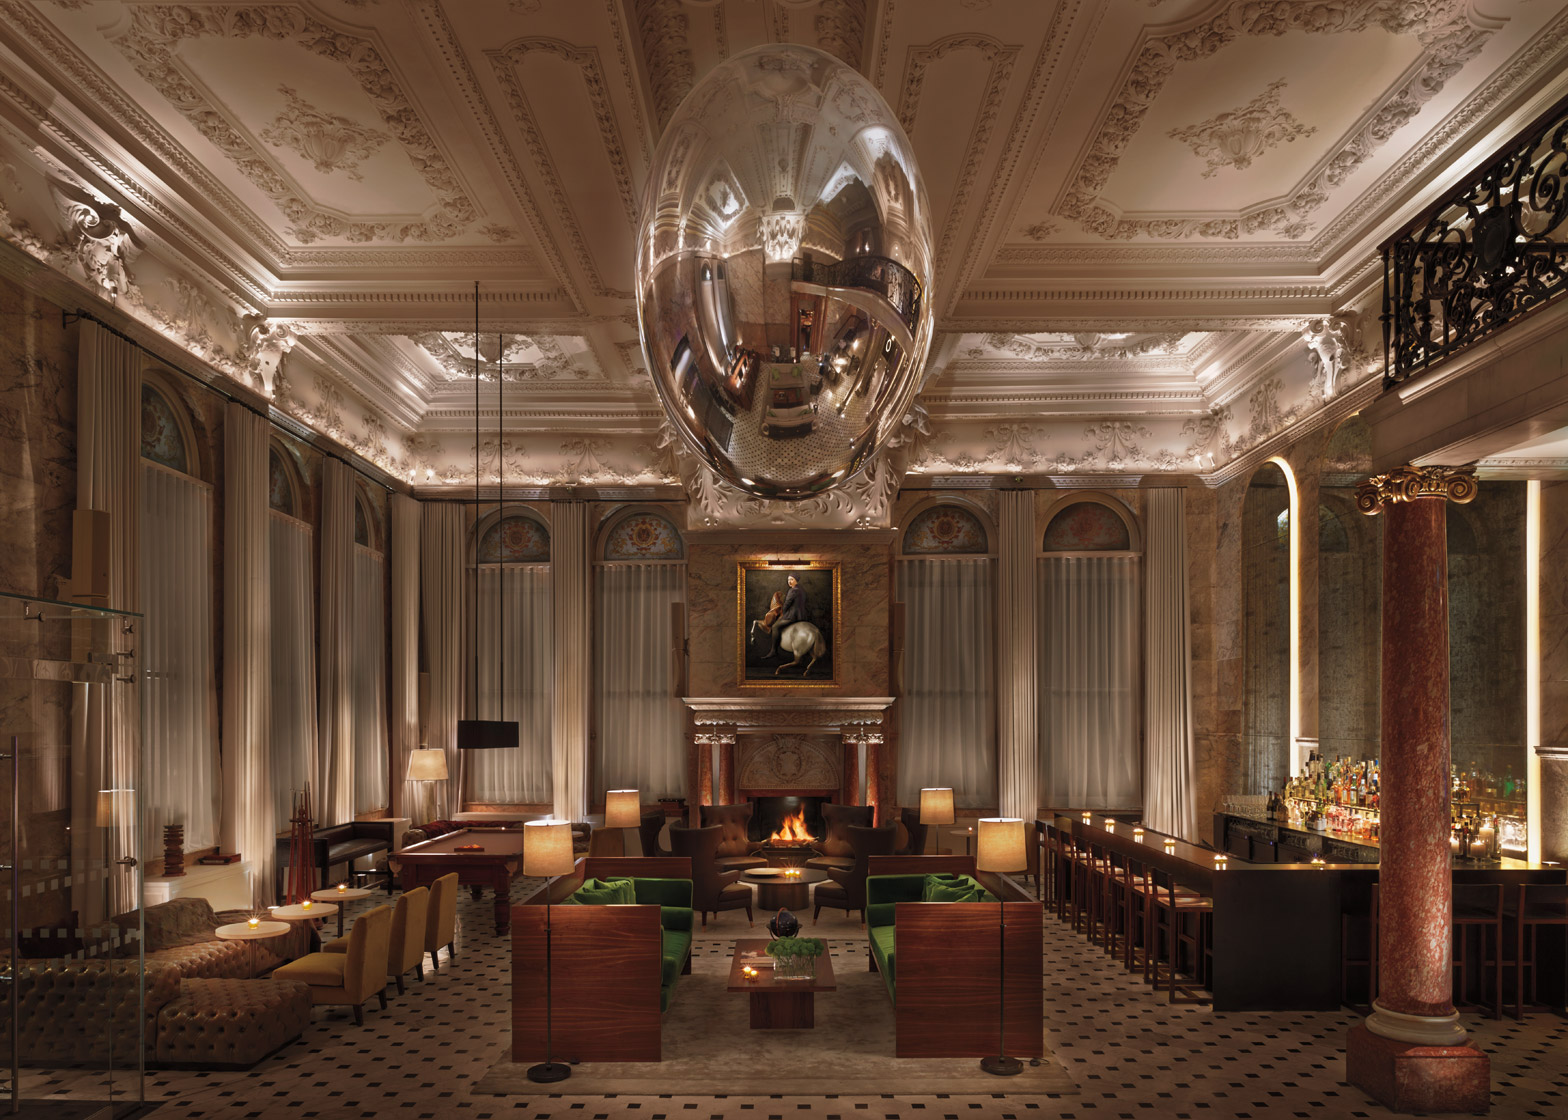 Schrager has also started the Edition Hotel brand in partnership collaboration with Marriot International. The London Edition opened in 2013 shortly followed by the Miami Beach Edition with more due to open